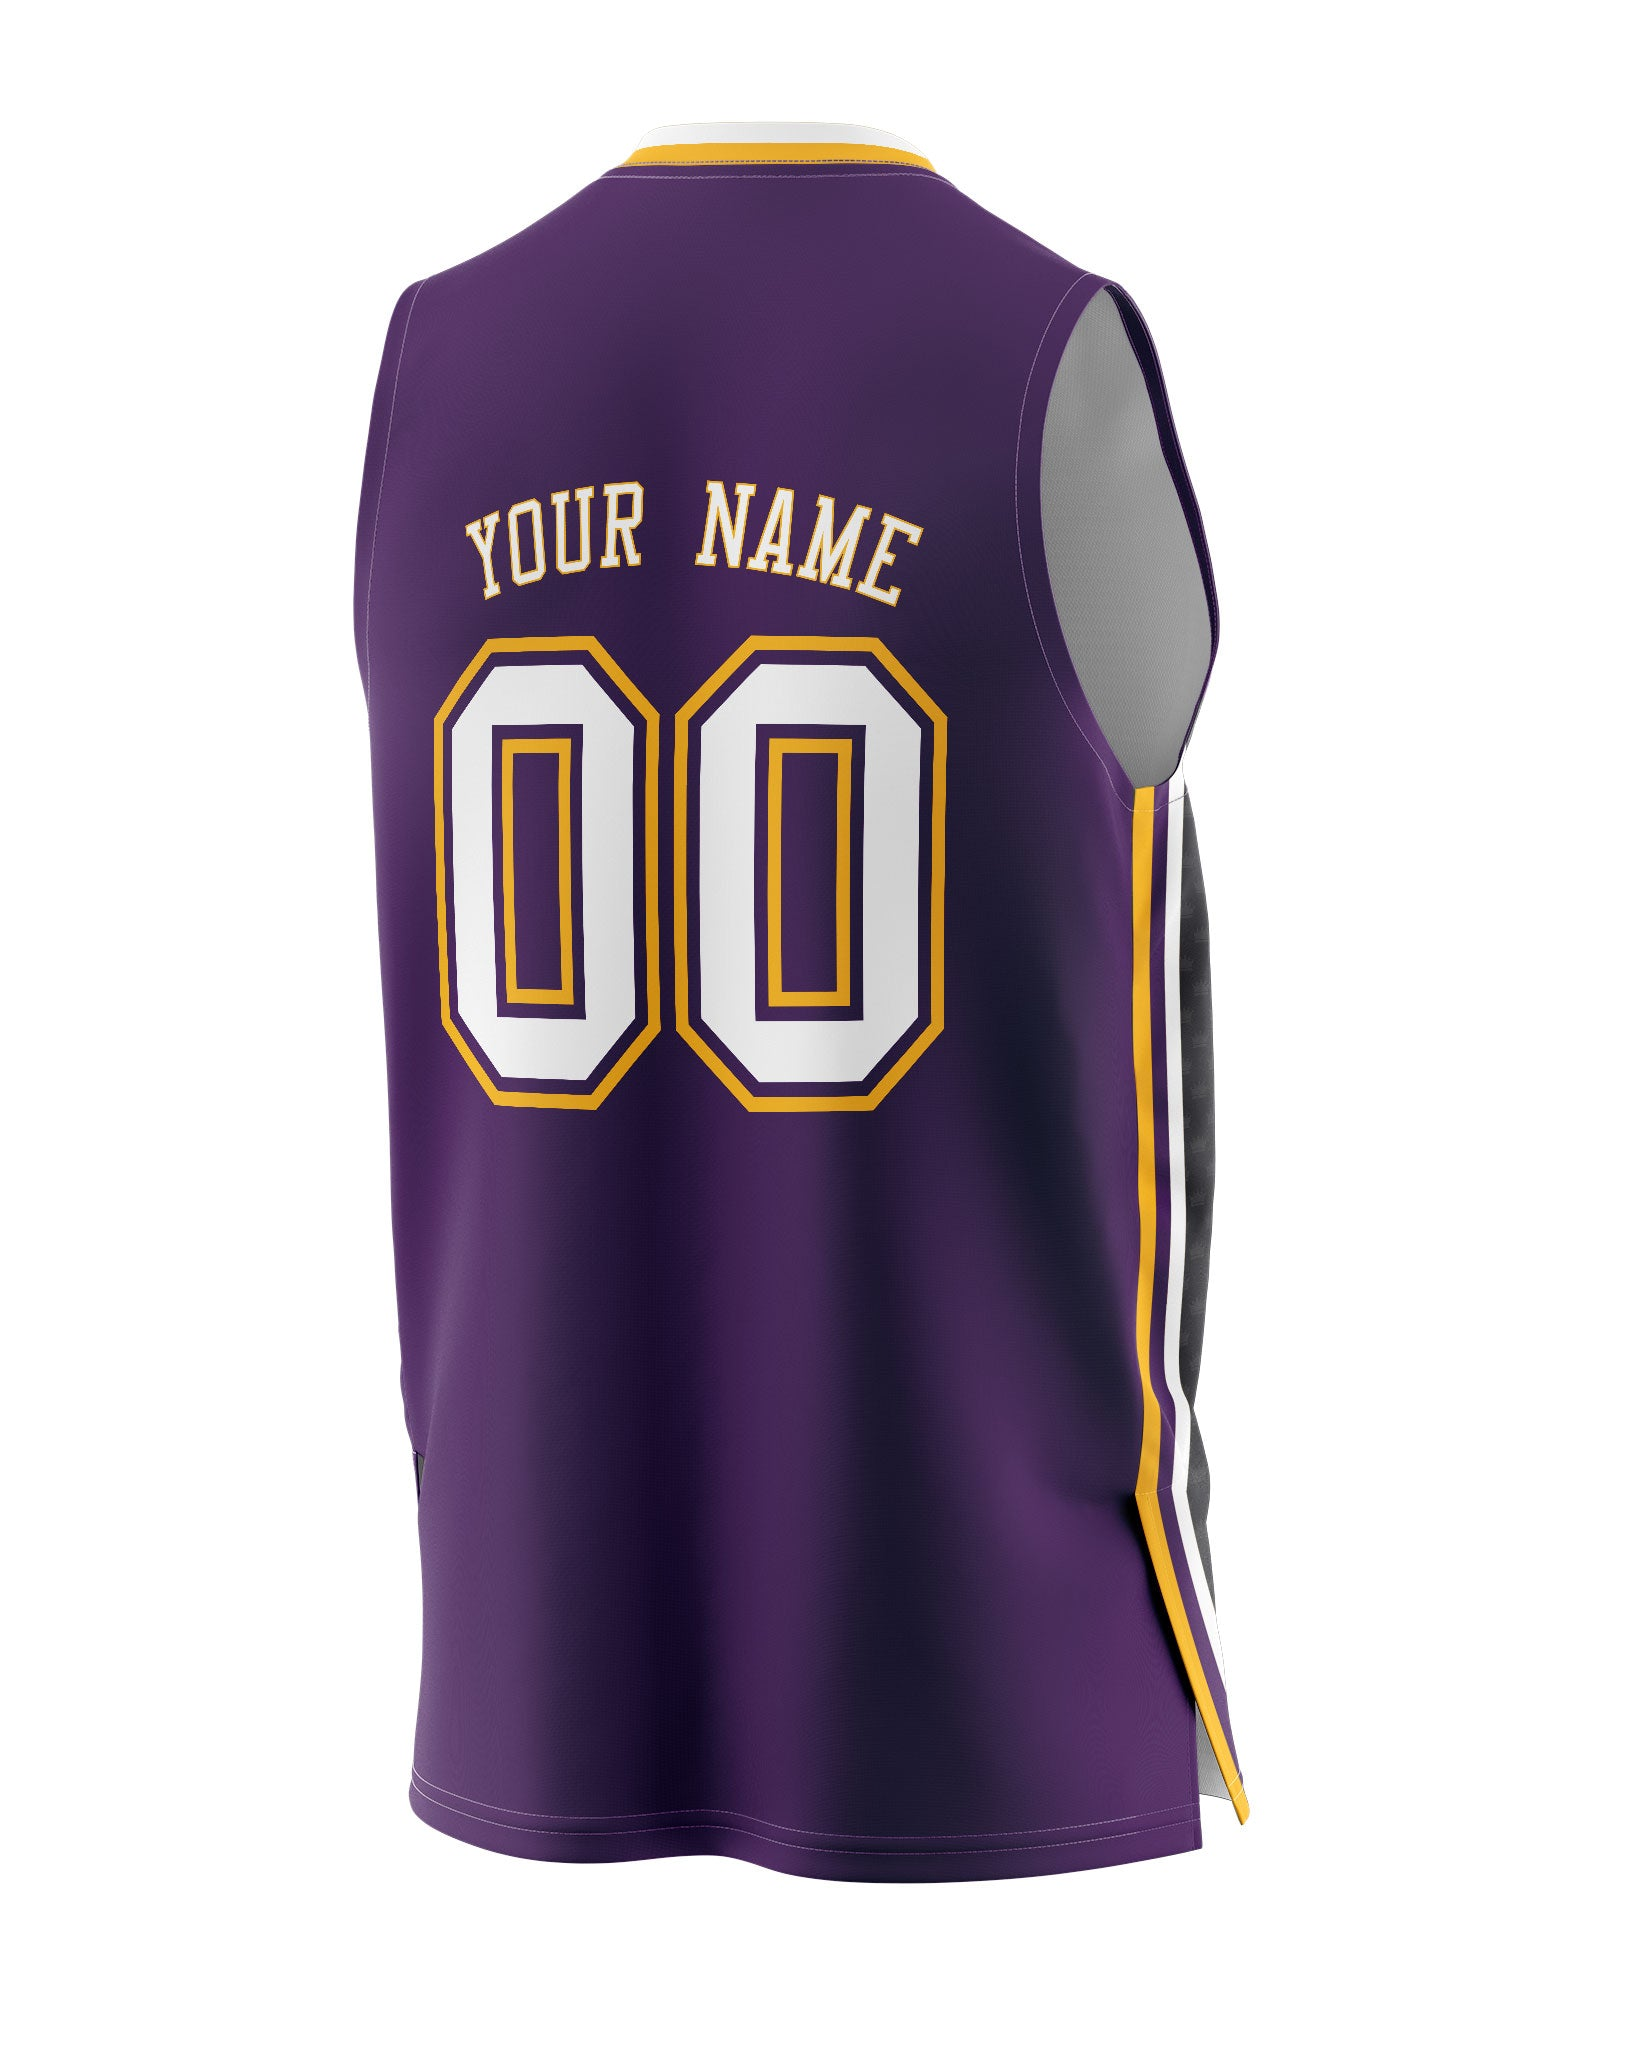 Sydney Kings 20/21 Authentic Home Jersey - Personalised